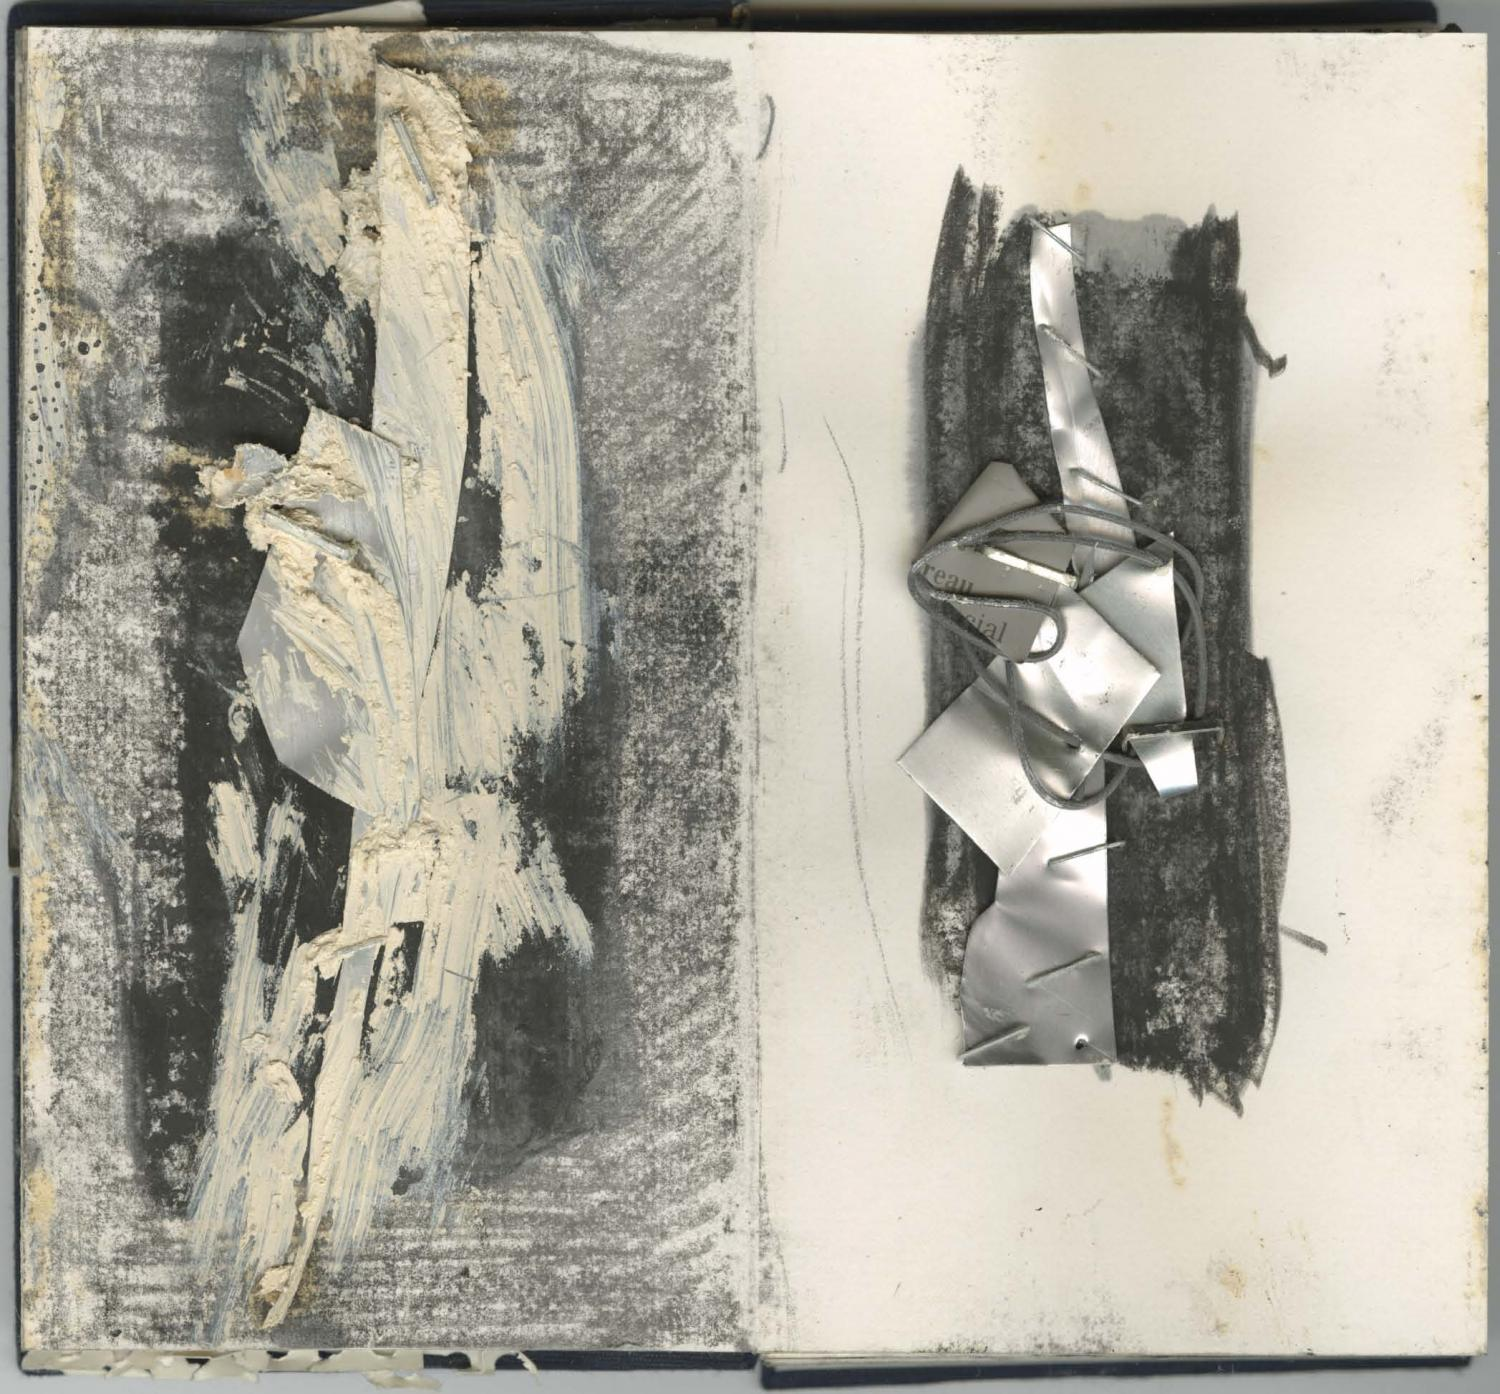 Two pages of an artist book by abstract artist Louise Fishman. On the left side, a grey textured rectangle with dark charcoal at center; vertically overlaid with white paint/collage. On right, a similar composition made of bent aluminum and wire on paper.